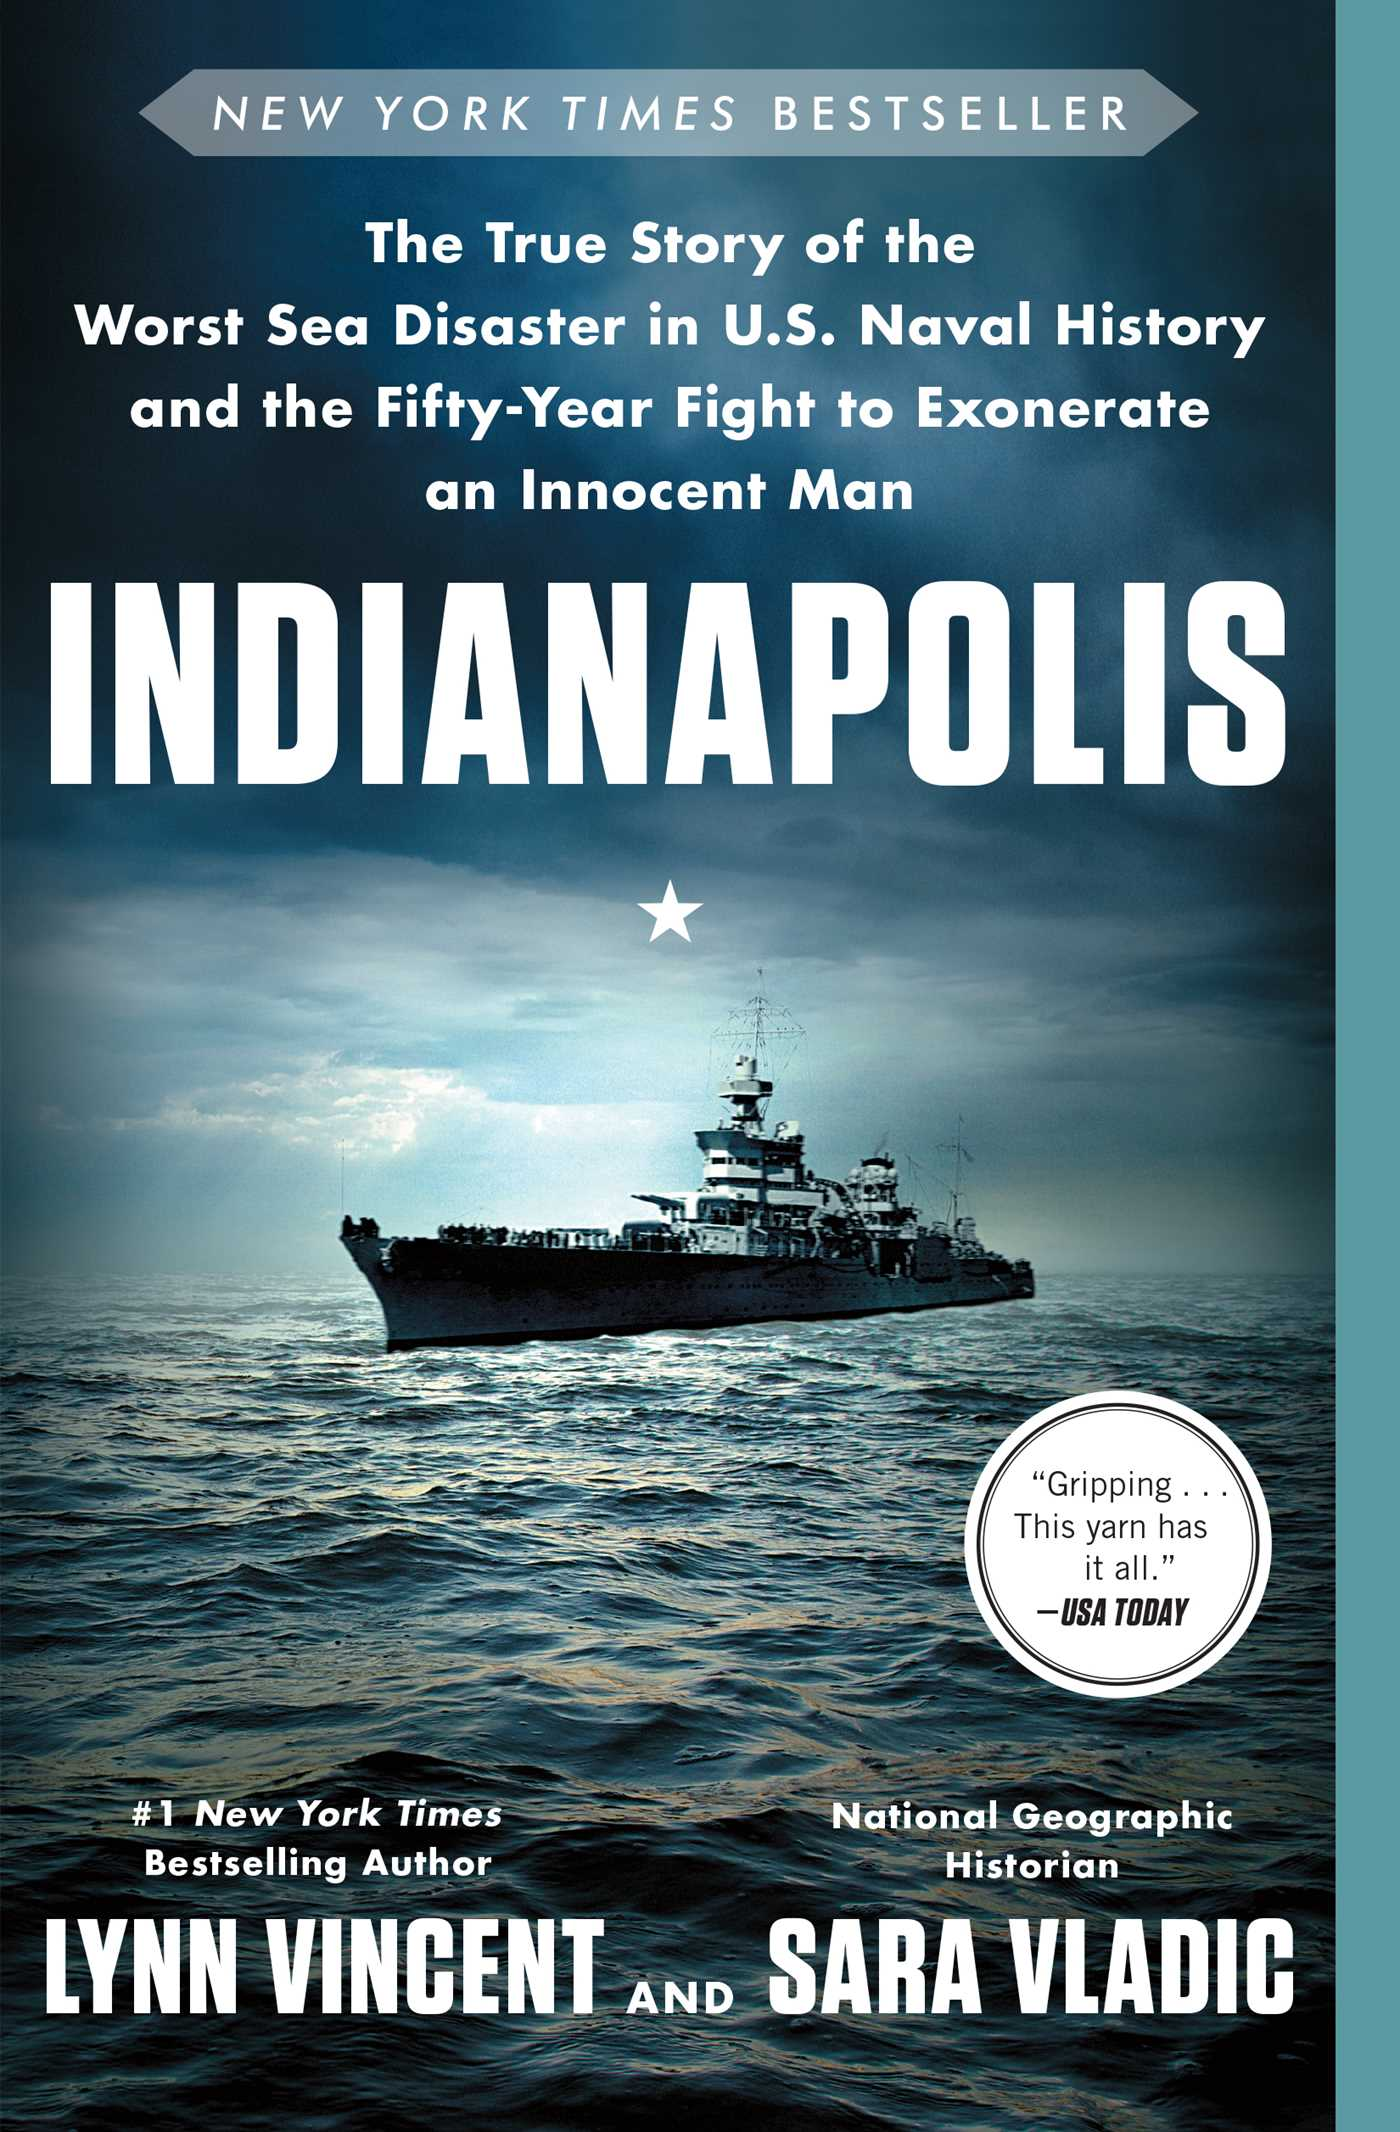 Indianapolis The True Story of the Worst Sea Disaster in U.S. Naval History and the Fifty-Year Fight to Exonerate an Innocent Man